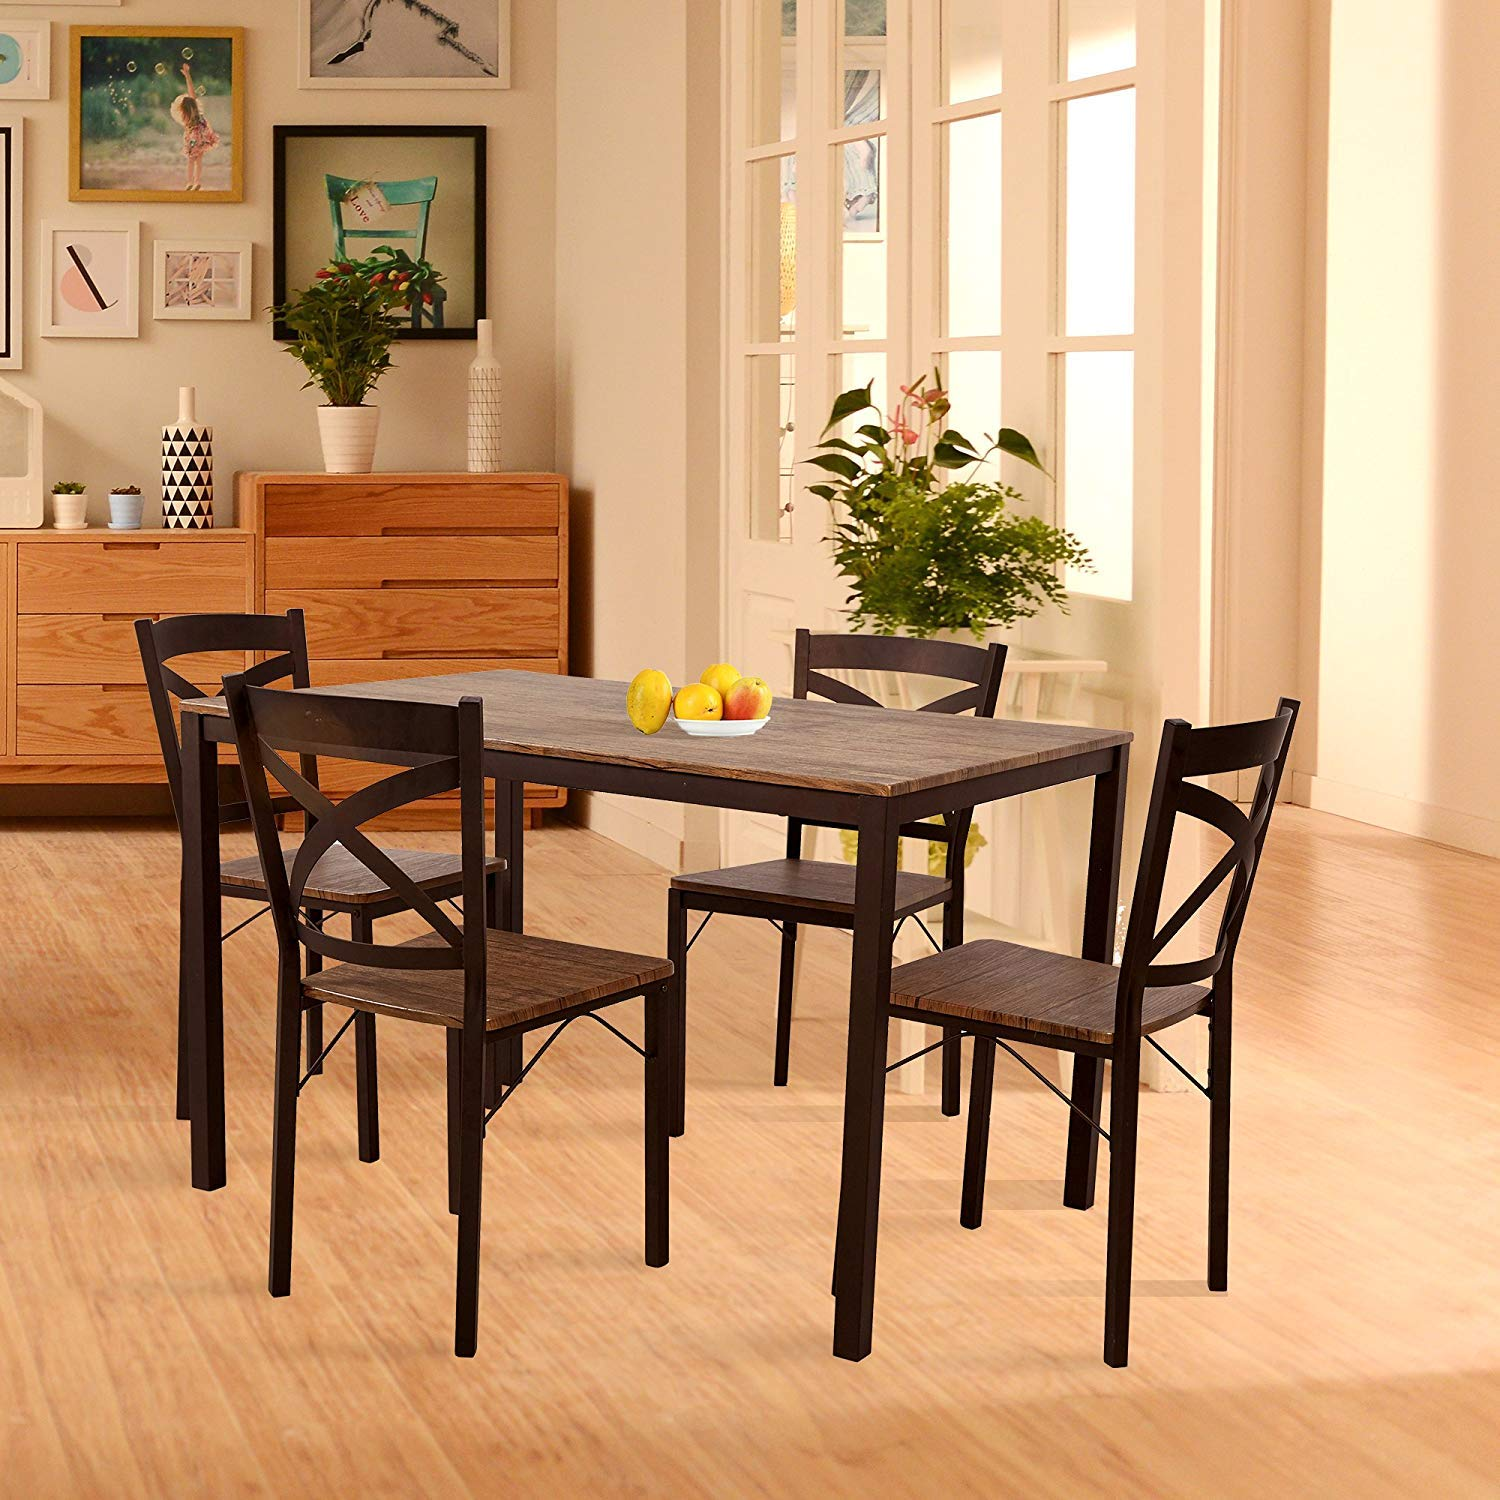 Dporticus 5-Piece Dining Set Industrial Style Wooden Kitchen Table and Chairs with Metal Legs- Espresso by Dporticus (Image #9)